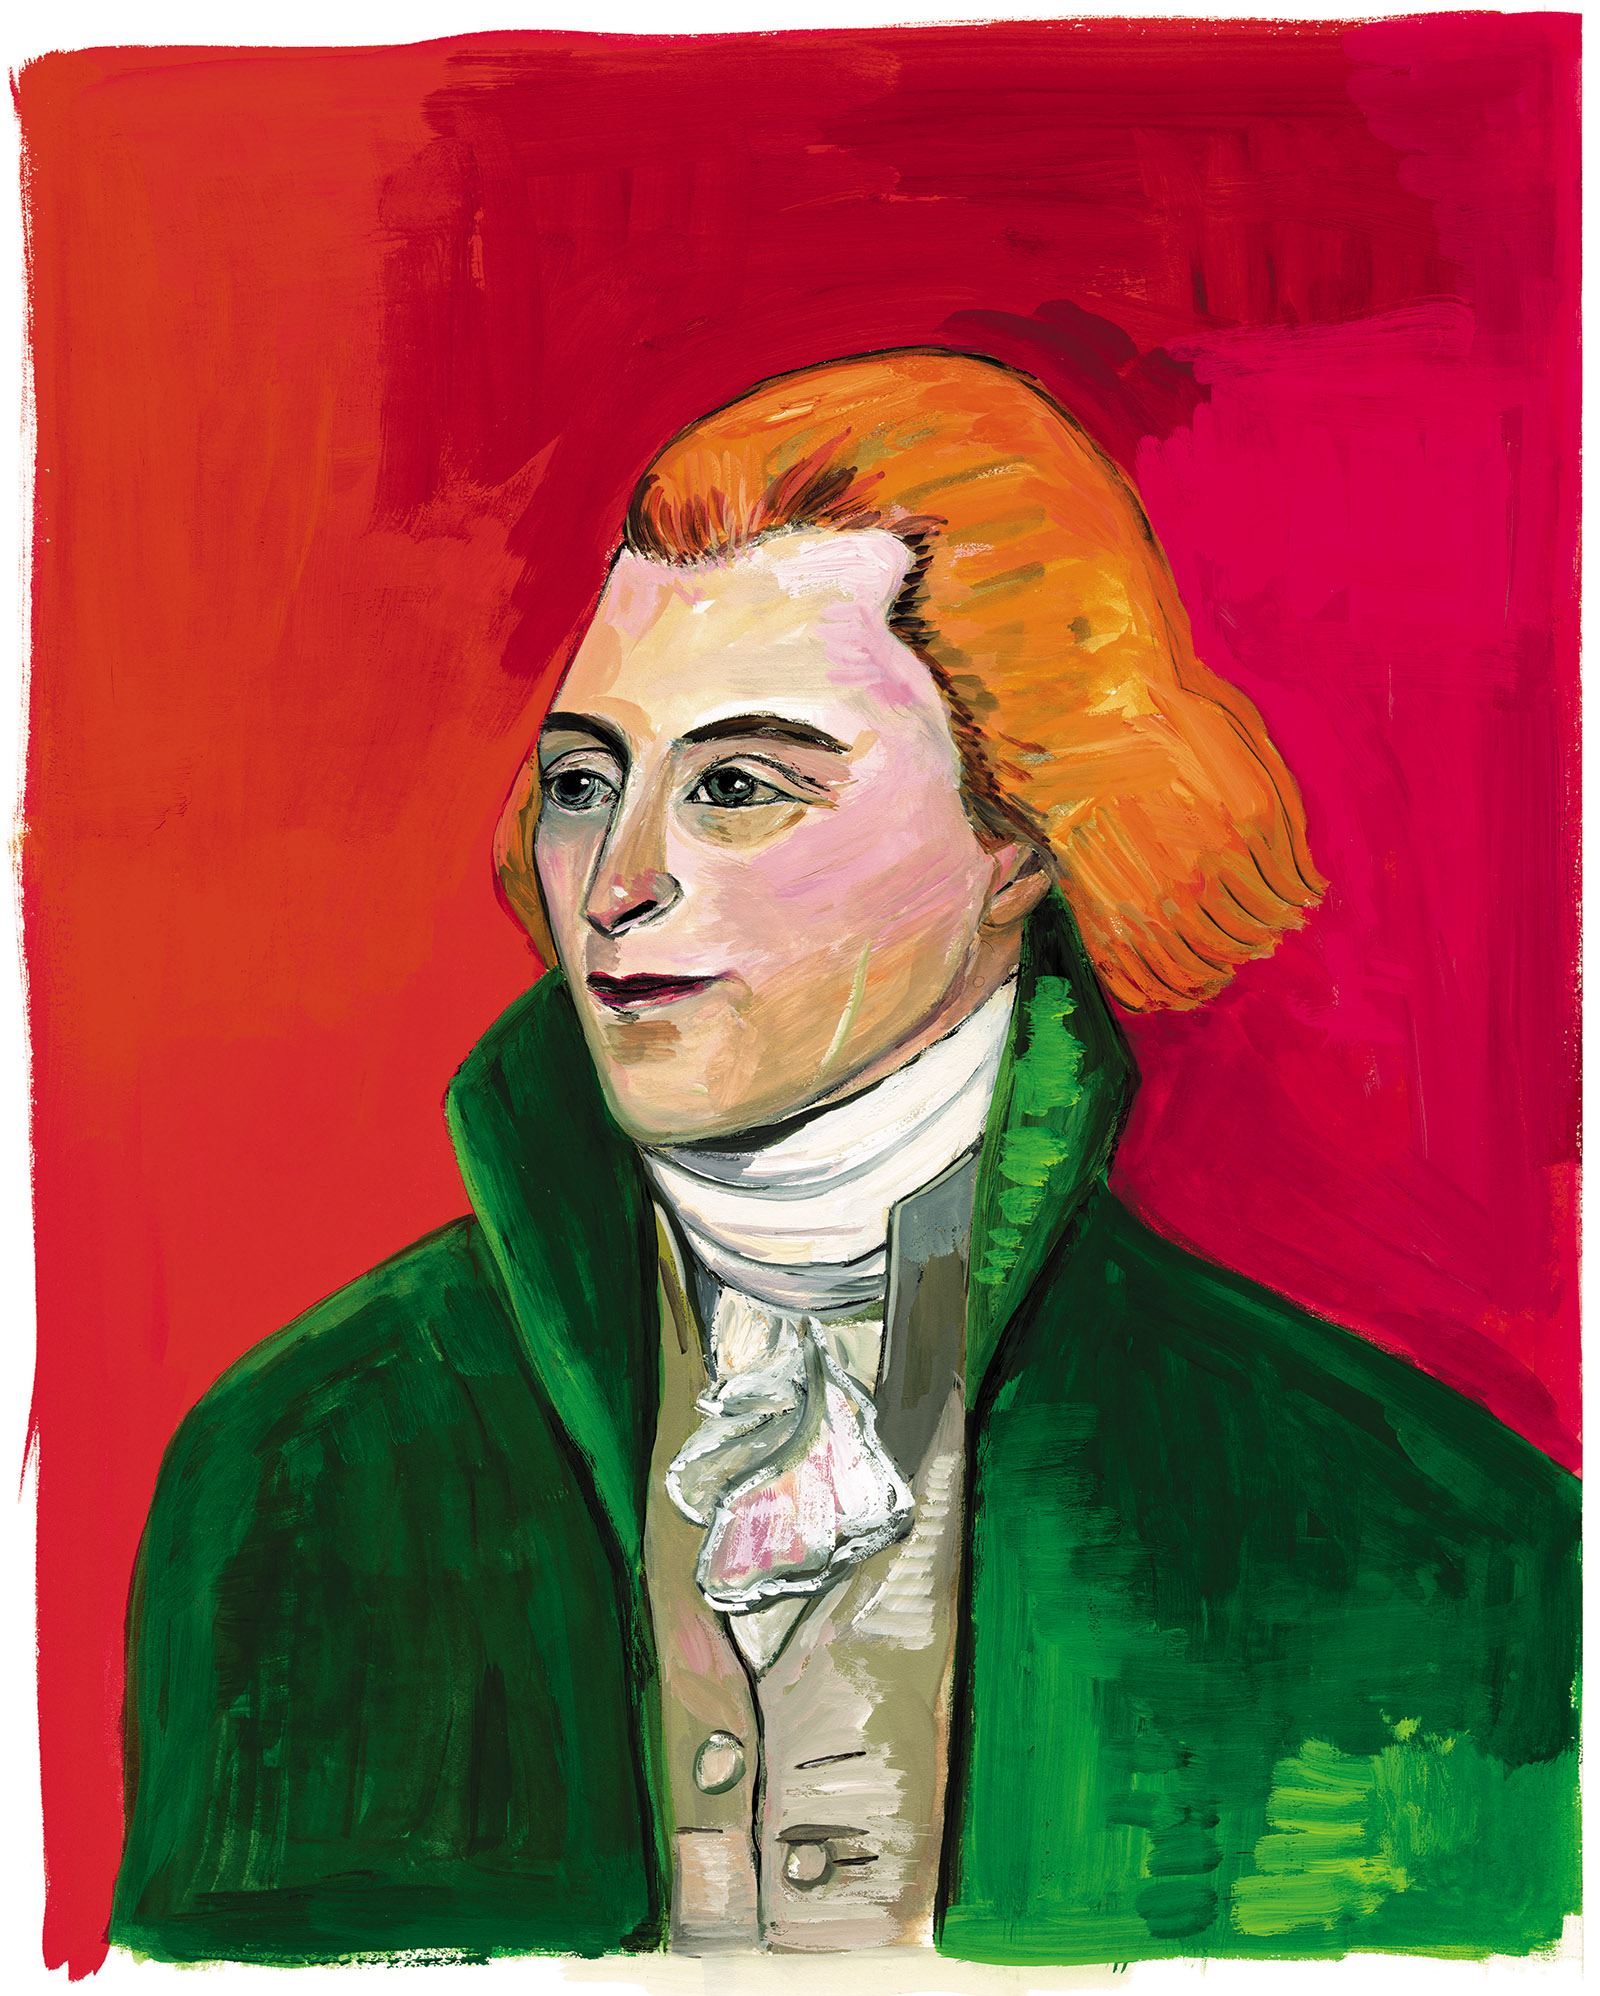 Thomas Jefferson; painting by Maira Kalman. It and the painting of John Adams on page 70 are from her book Thomas Jefferson: Life, Liberty and the Pursuit of Everything, published in 2014.